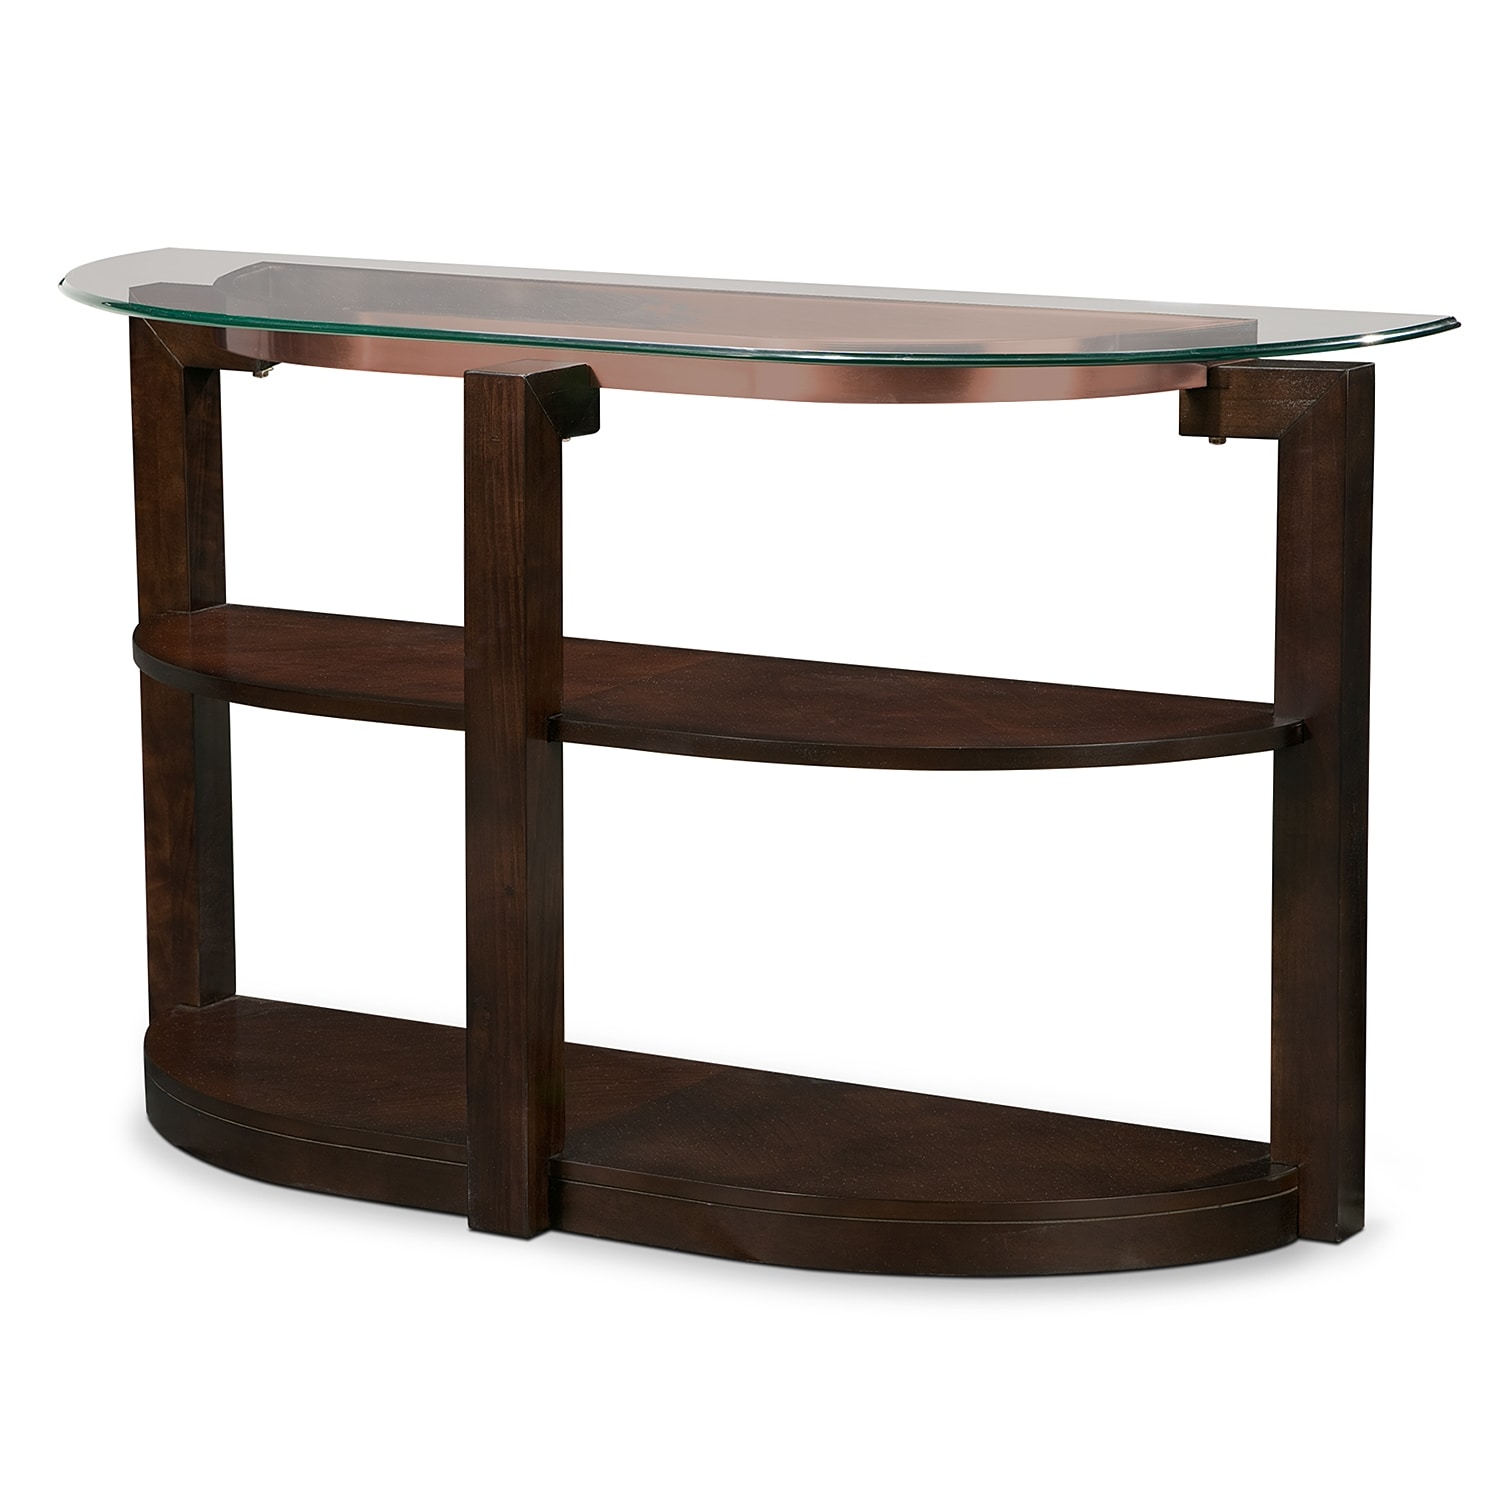 Auburn Sofa Table - Merlot